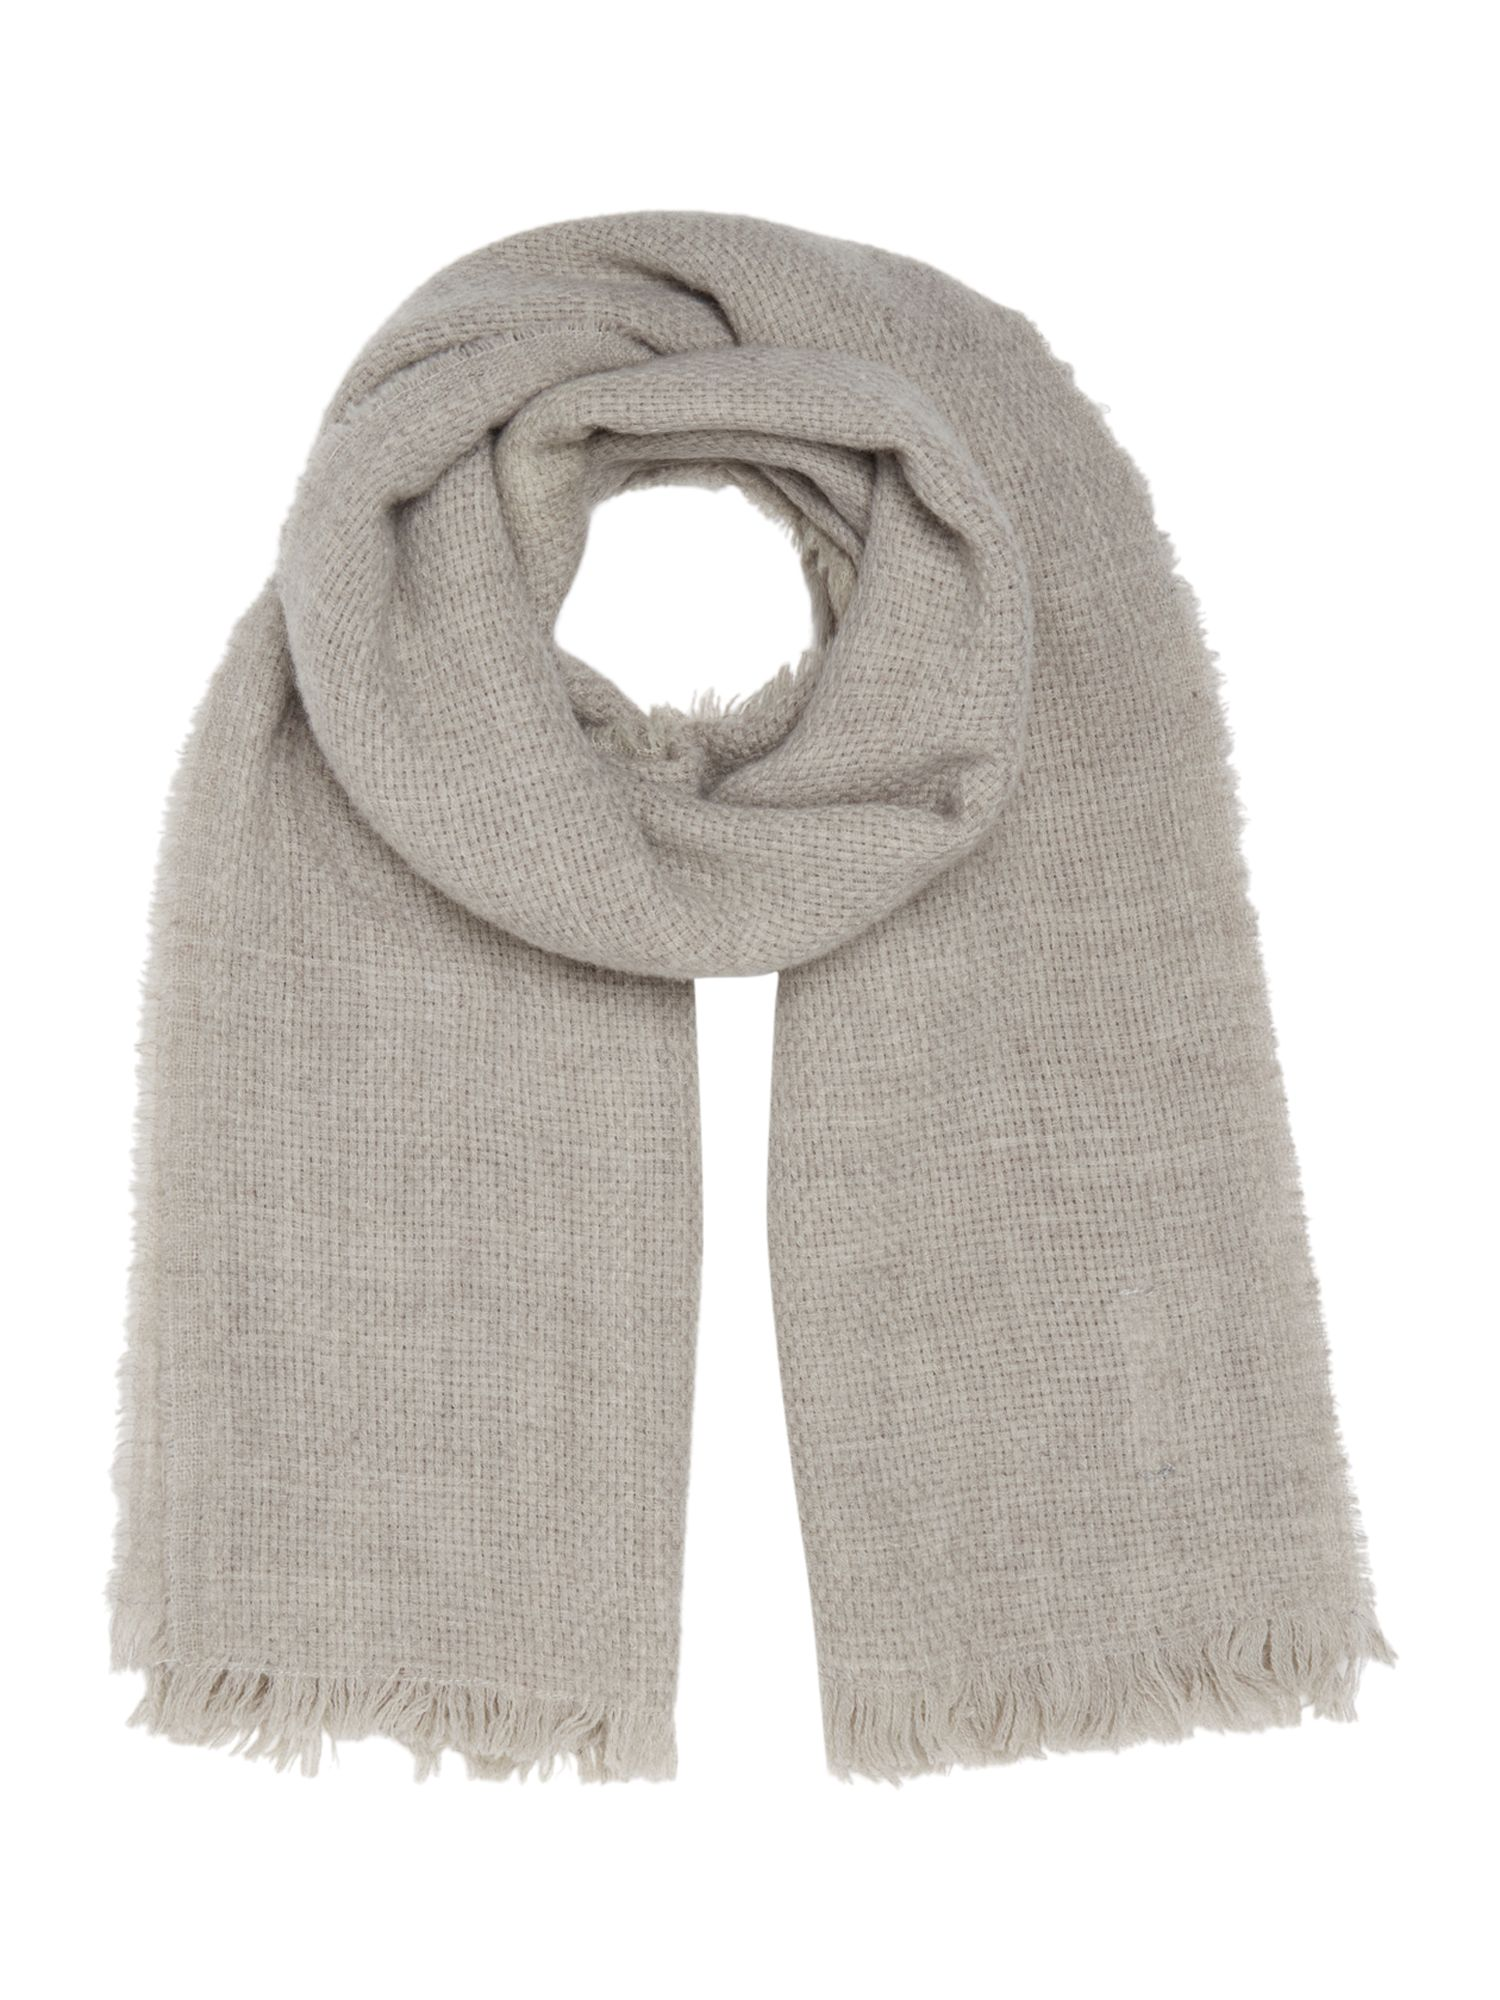 Gray & Willow Gray & Willow Weaved Wool Scarf, Grey